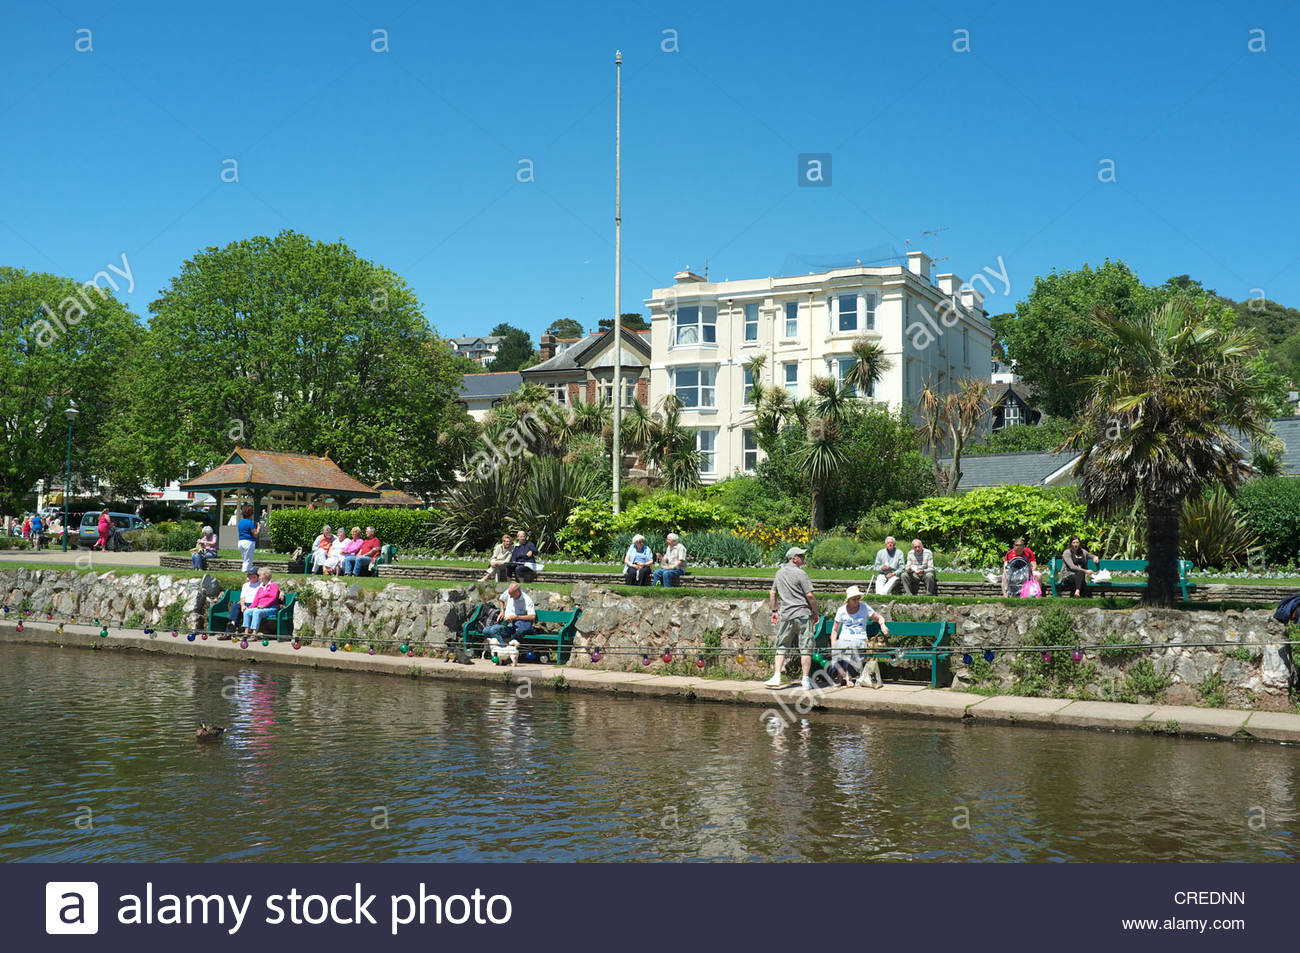 A view of The Lawn, a recreational area in the centre of Dawlish in south Devon, UK. - Stock Image